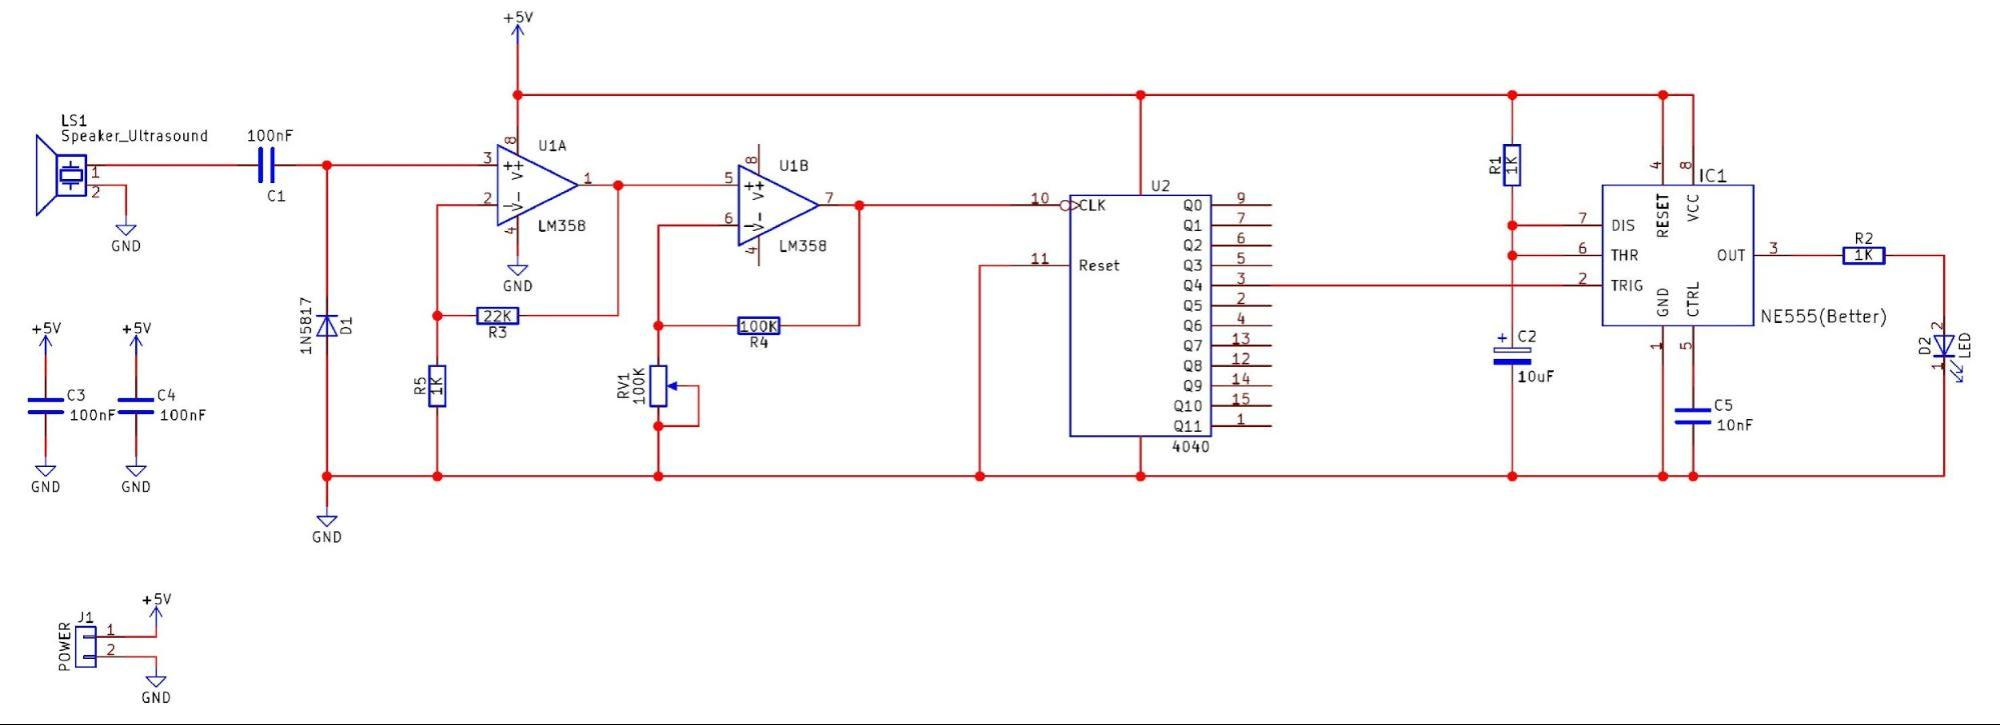 hight resolution of how to make a circuit that detects high frequencies the bat bat detector schematic image view